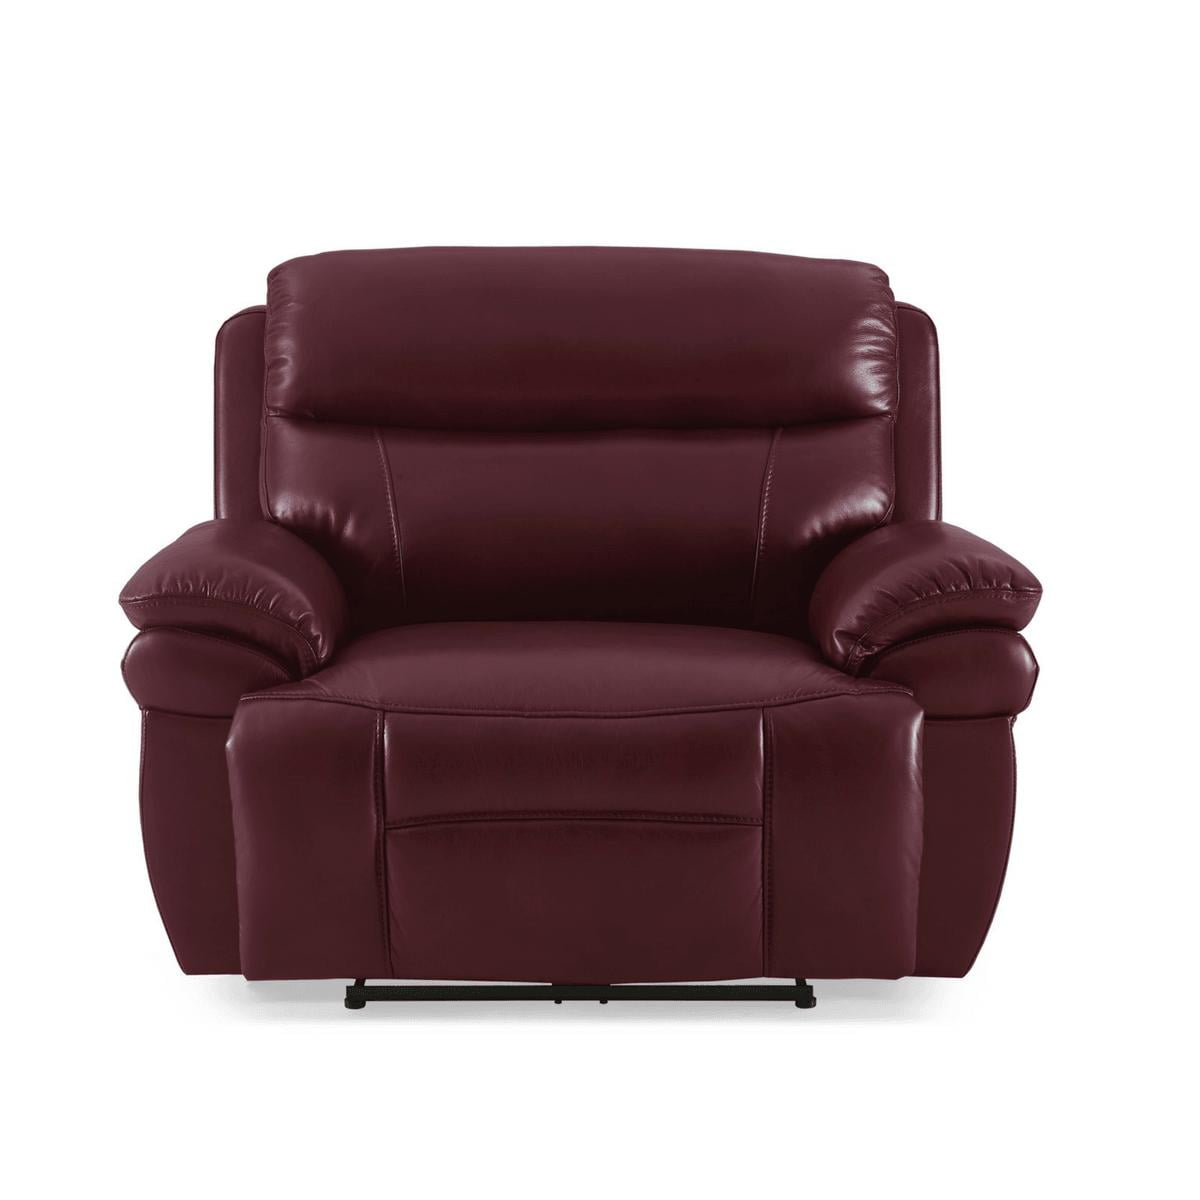 Super Chicago 1 Seater Power Recliner Pdpeps Interior Chair Design Pdpepsorg